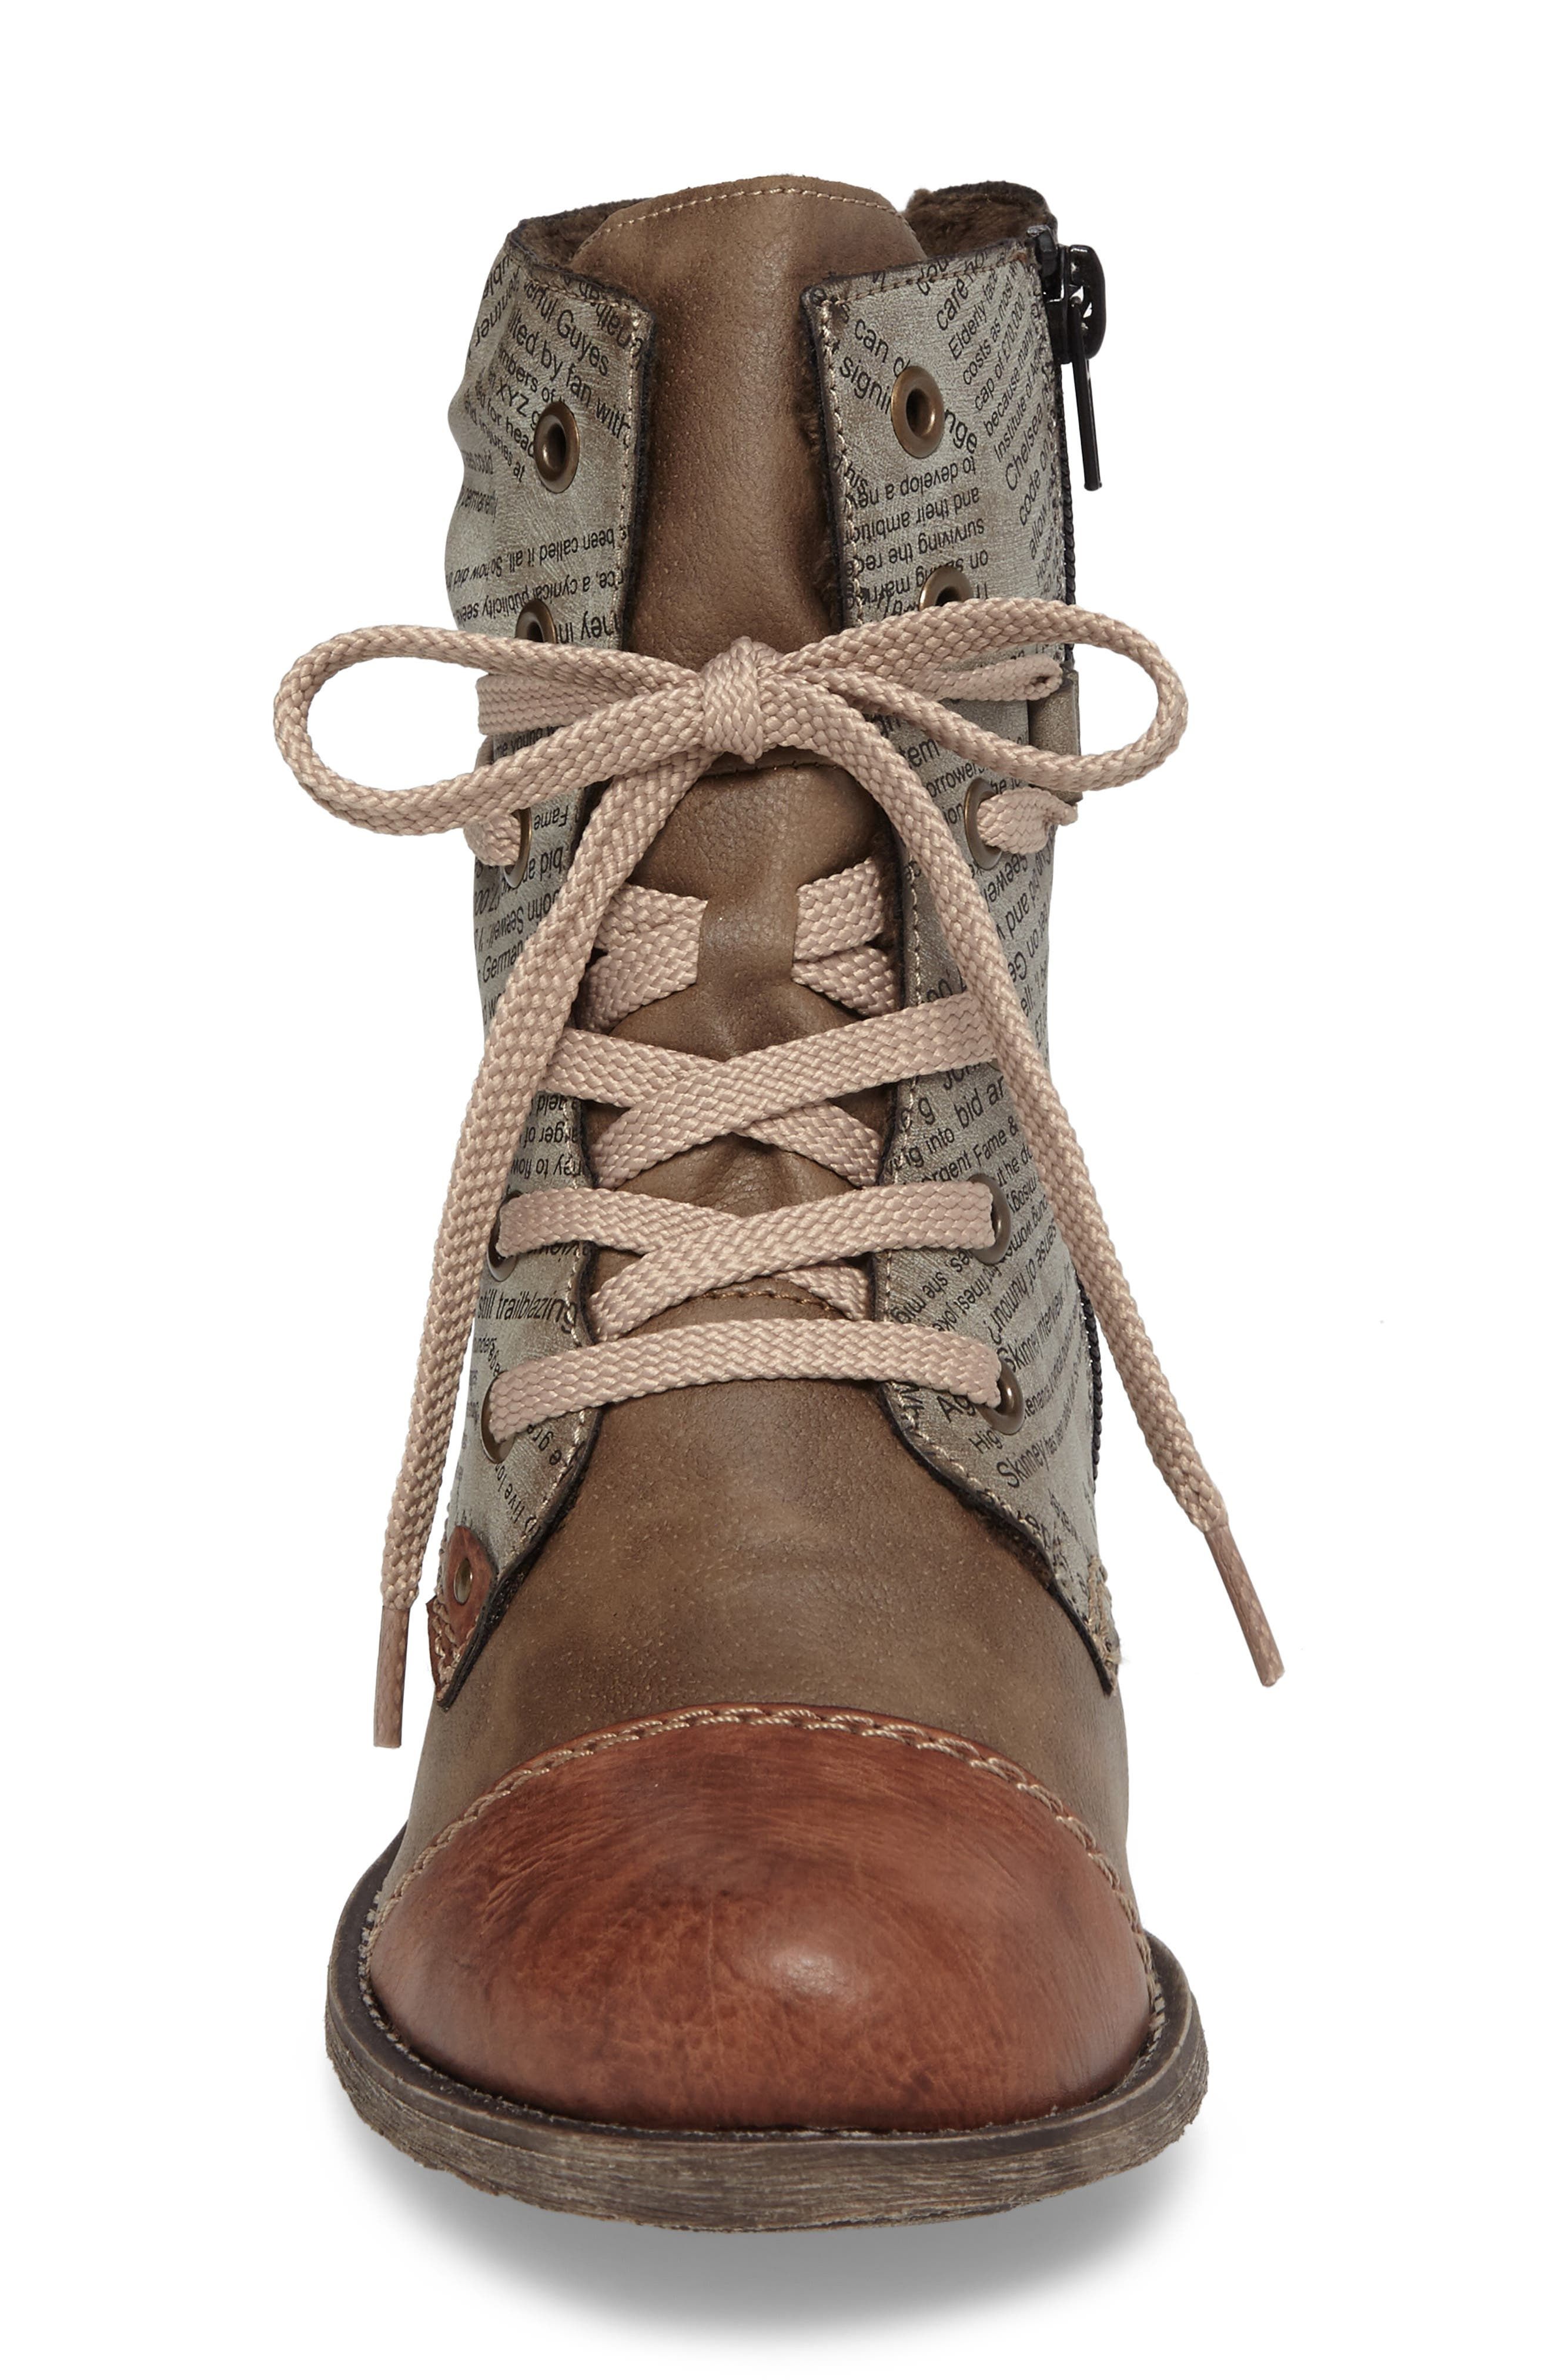 Payton 22 Lace-Up Boot,                             Alternate thumbnail 4, color,                             BRANDY/ CIGAR FAUX LEATHER